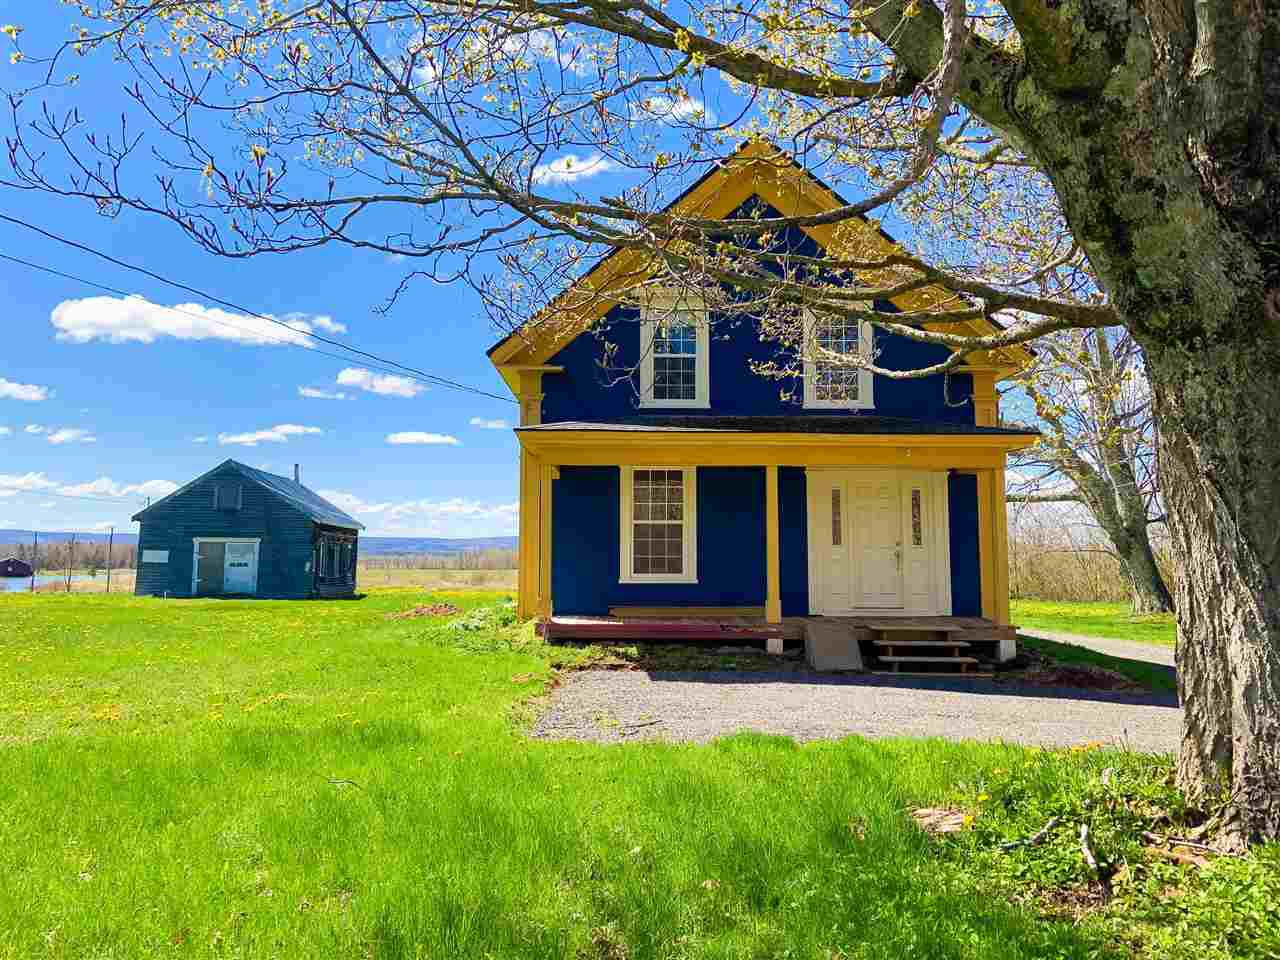 Main Photo: 3016 HIGHWAY 221 in Weston: 404-Kings County Residential for sale (Annapolis Valley)  : MLS®# 202008077